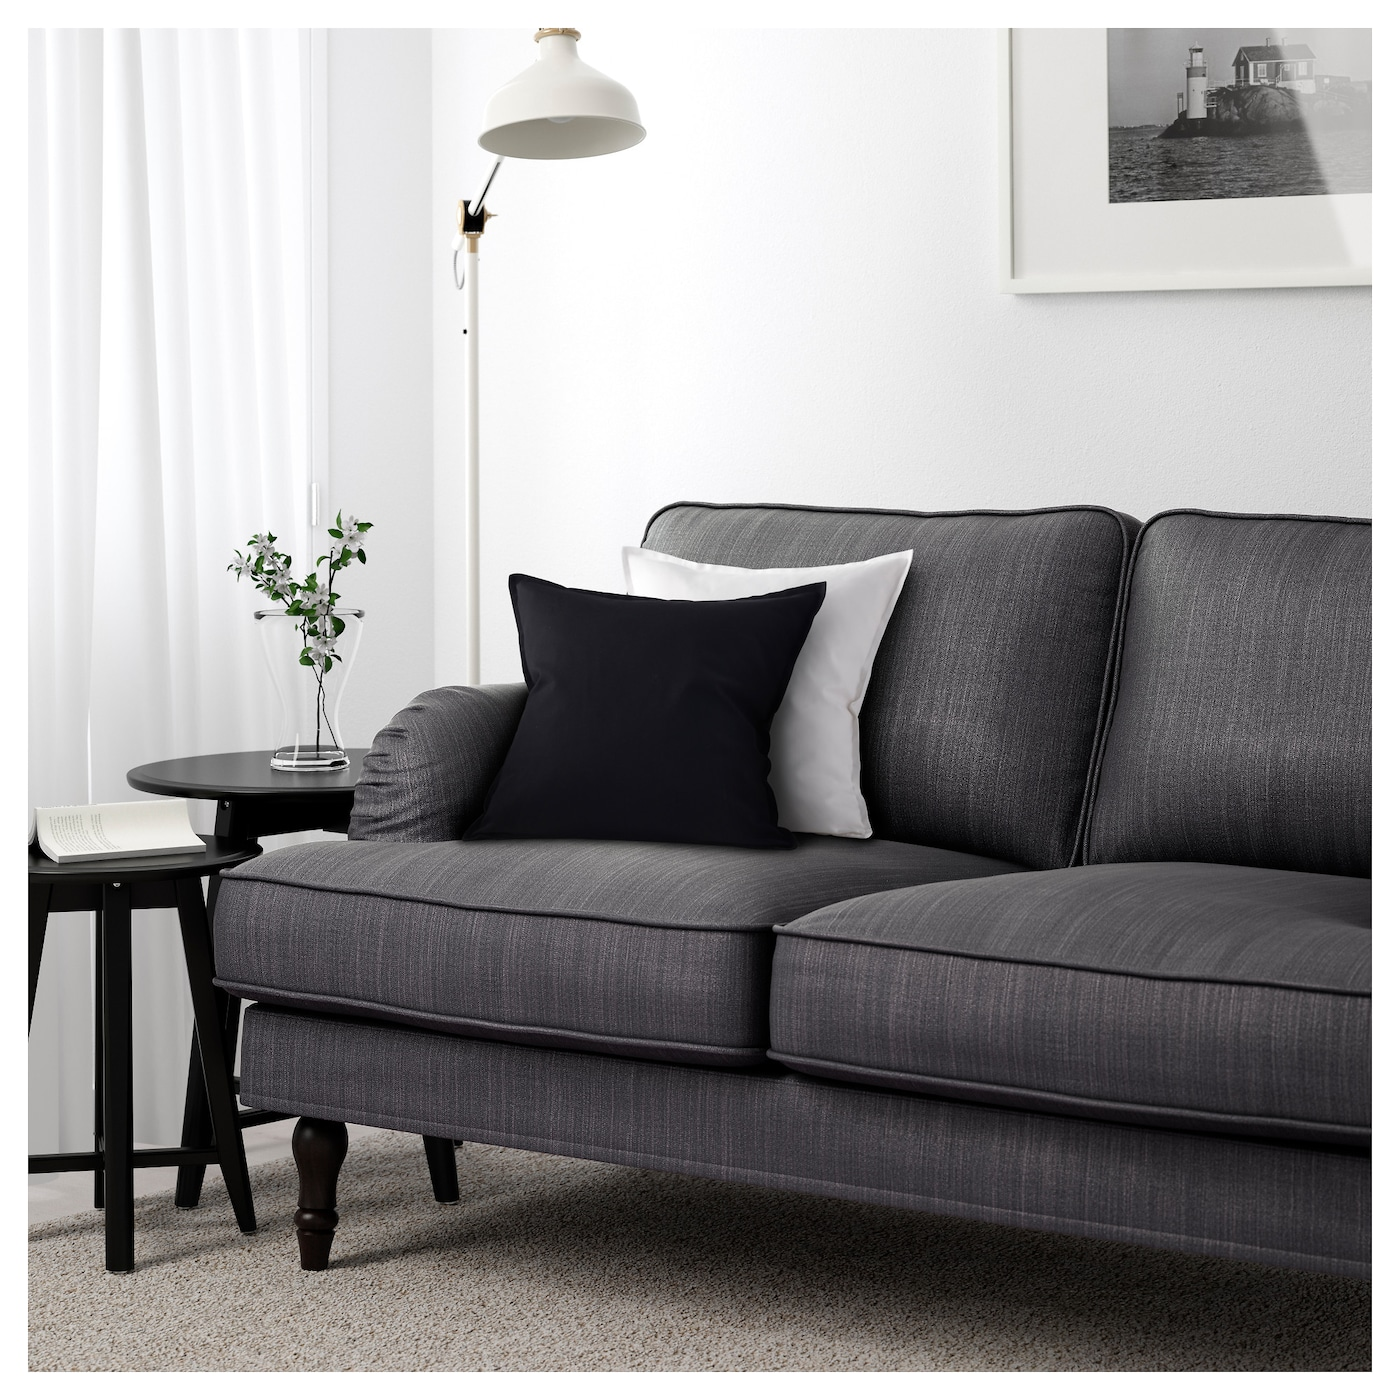 Stocksund Three Seat Sofa Nolhaga Dark Grey Black Wood Spr 39033801 on Wooden Legs Couch